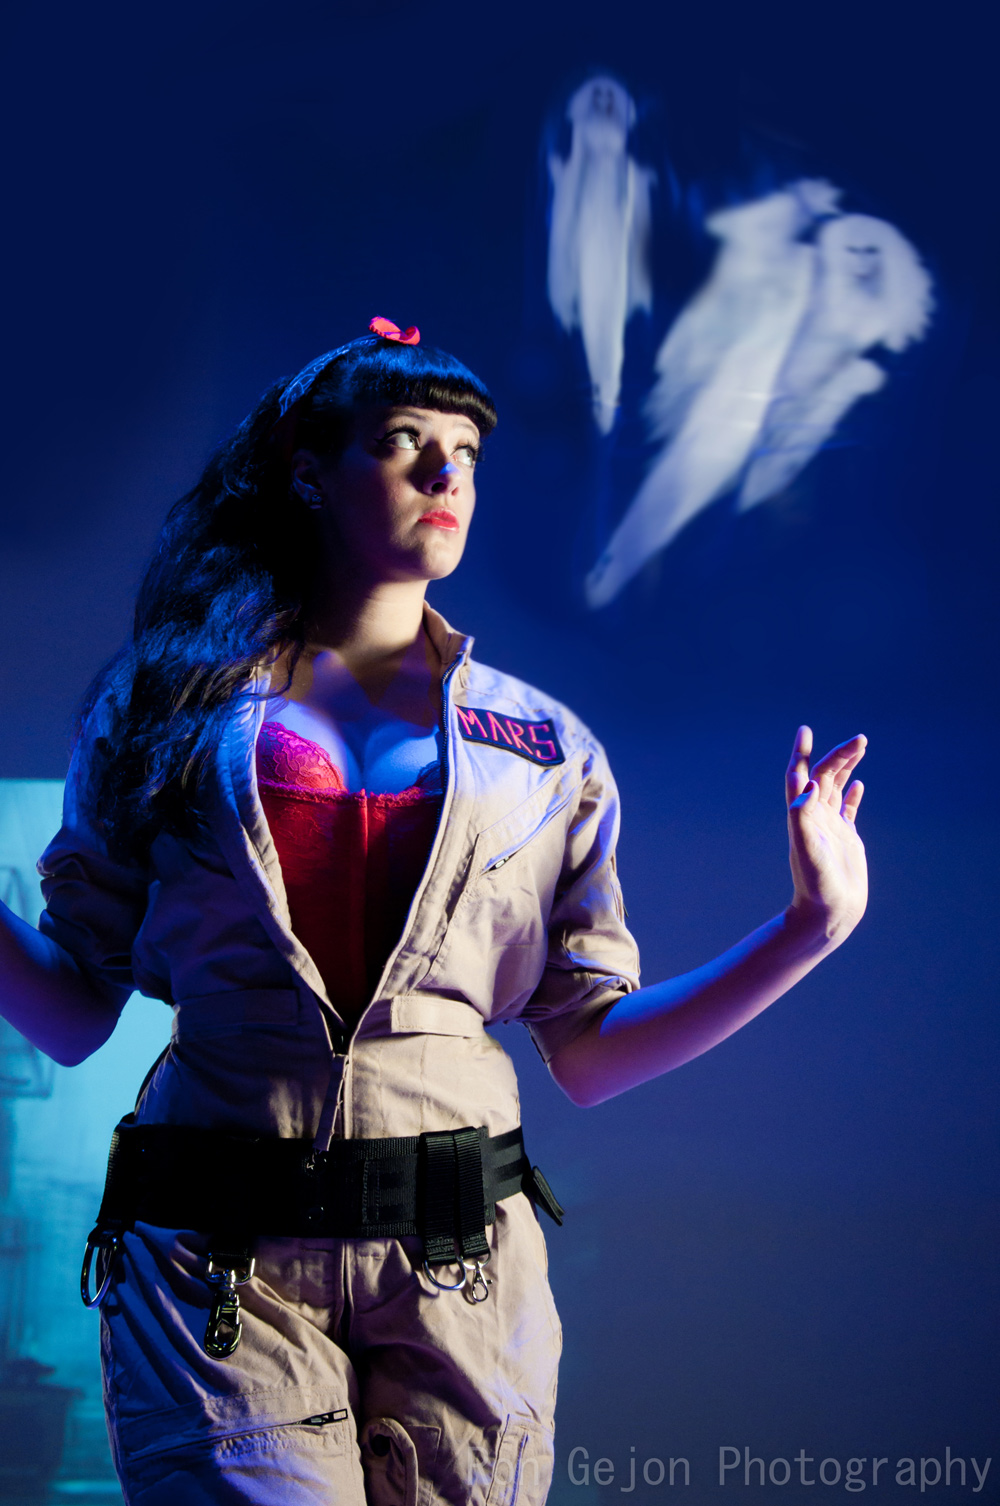 Model Luna x Mars featured in new pinup style Ghostbusters photoshoot